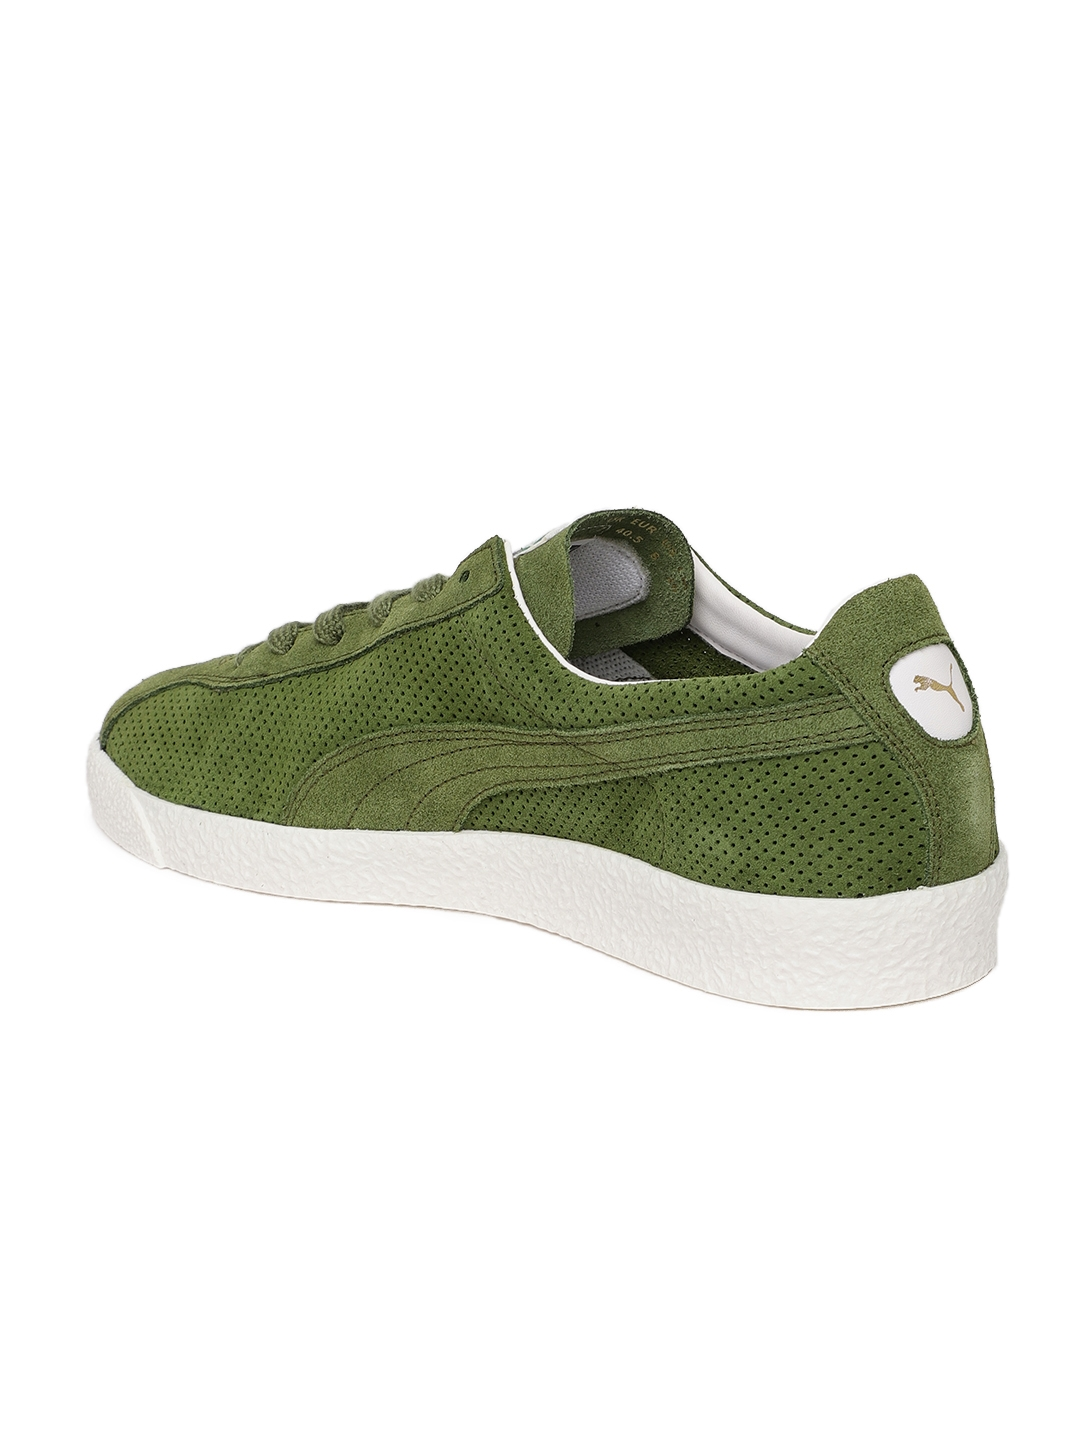 6cd06e7b2ab Buy Puma Men Olive Te Ku Summer Suede Sneakers - Casual Shoes for ...